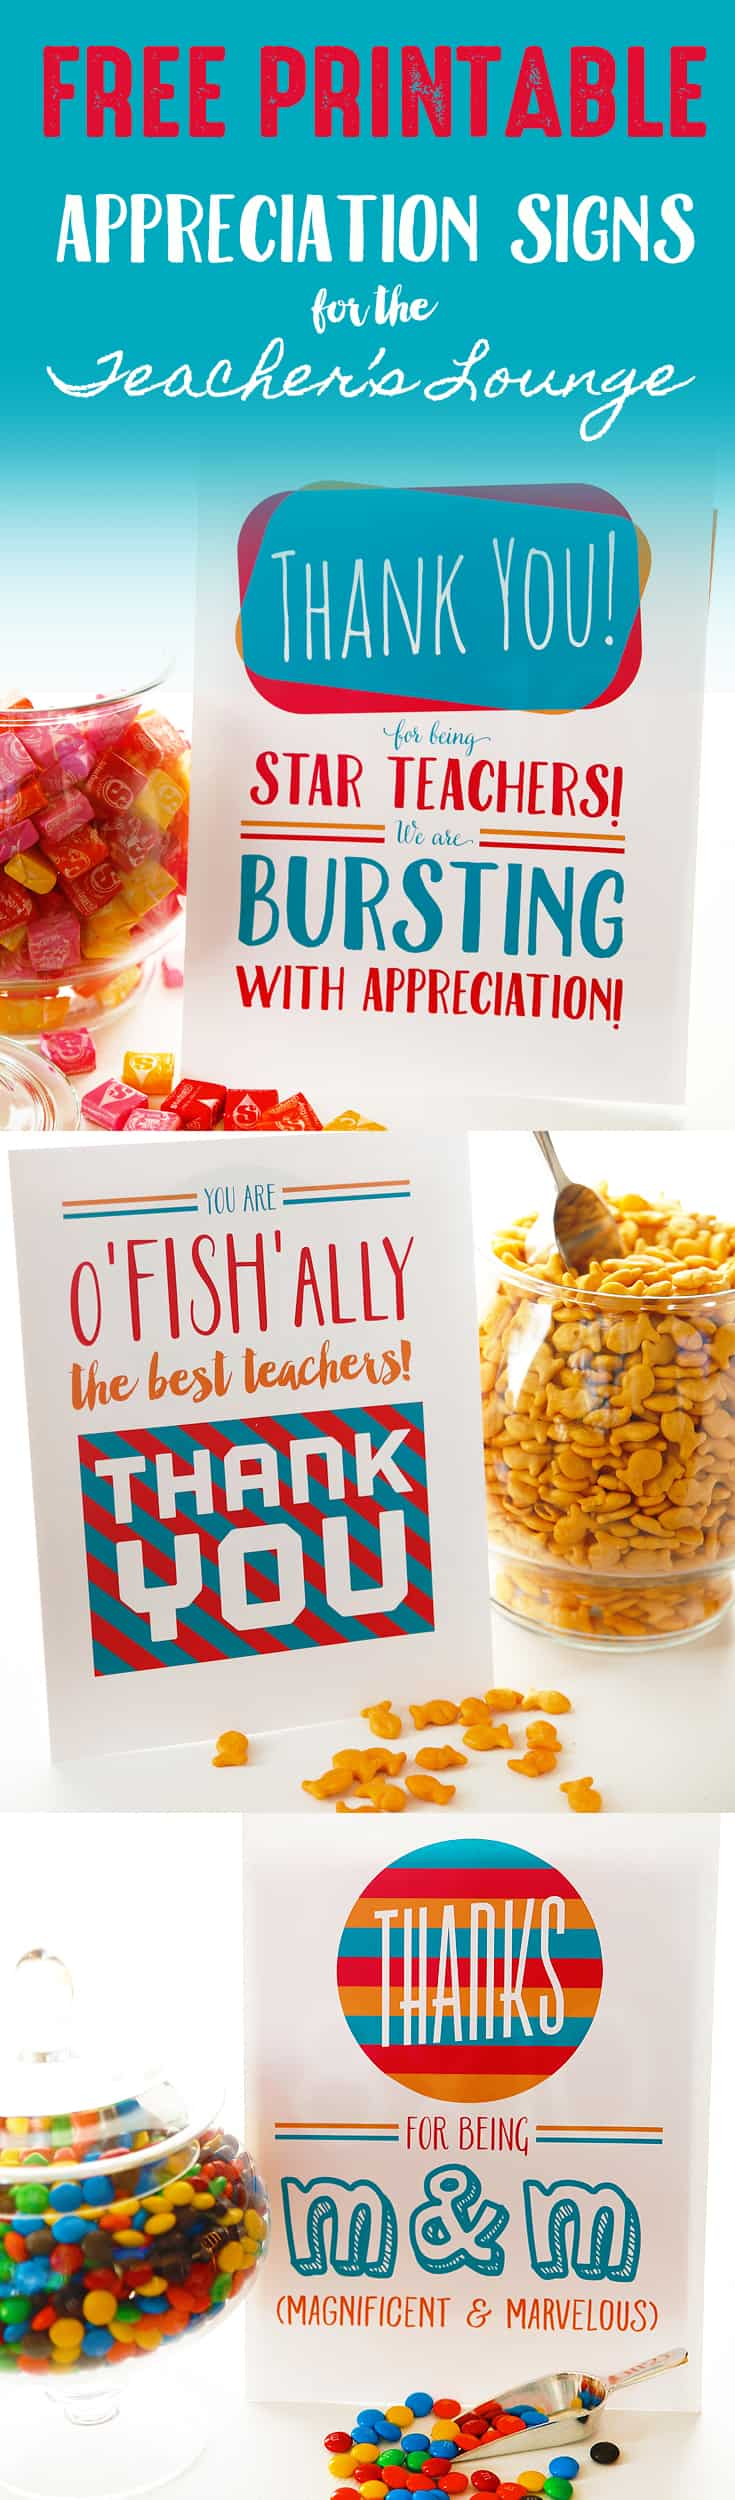 printable-appreciation-signs